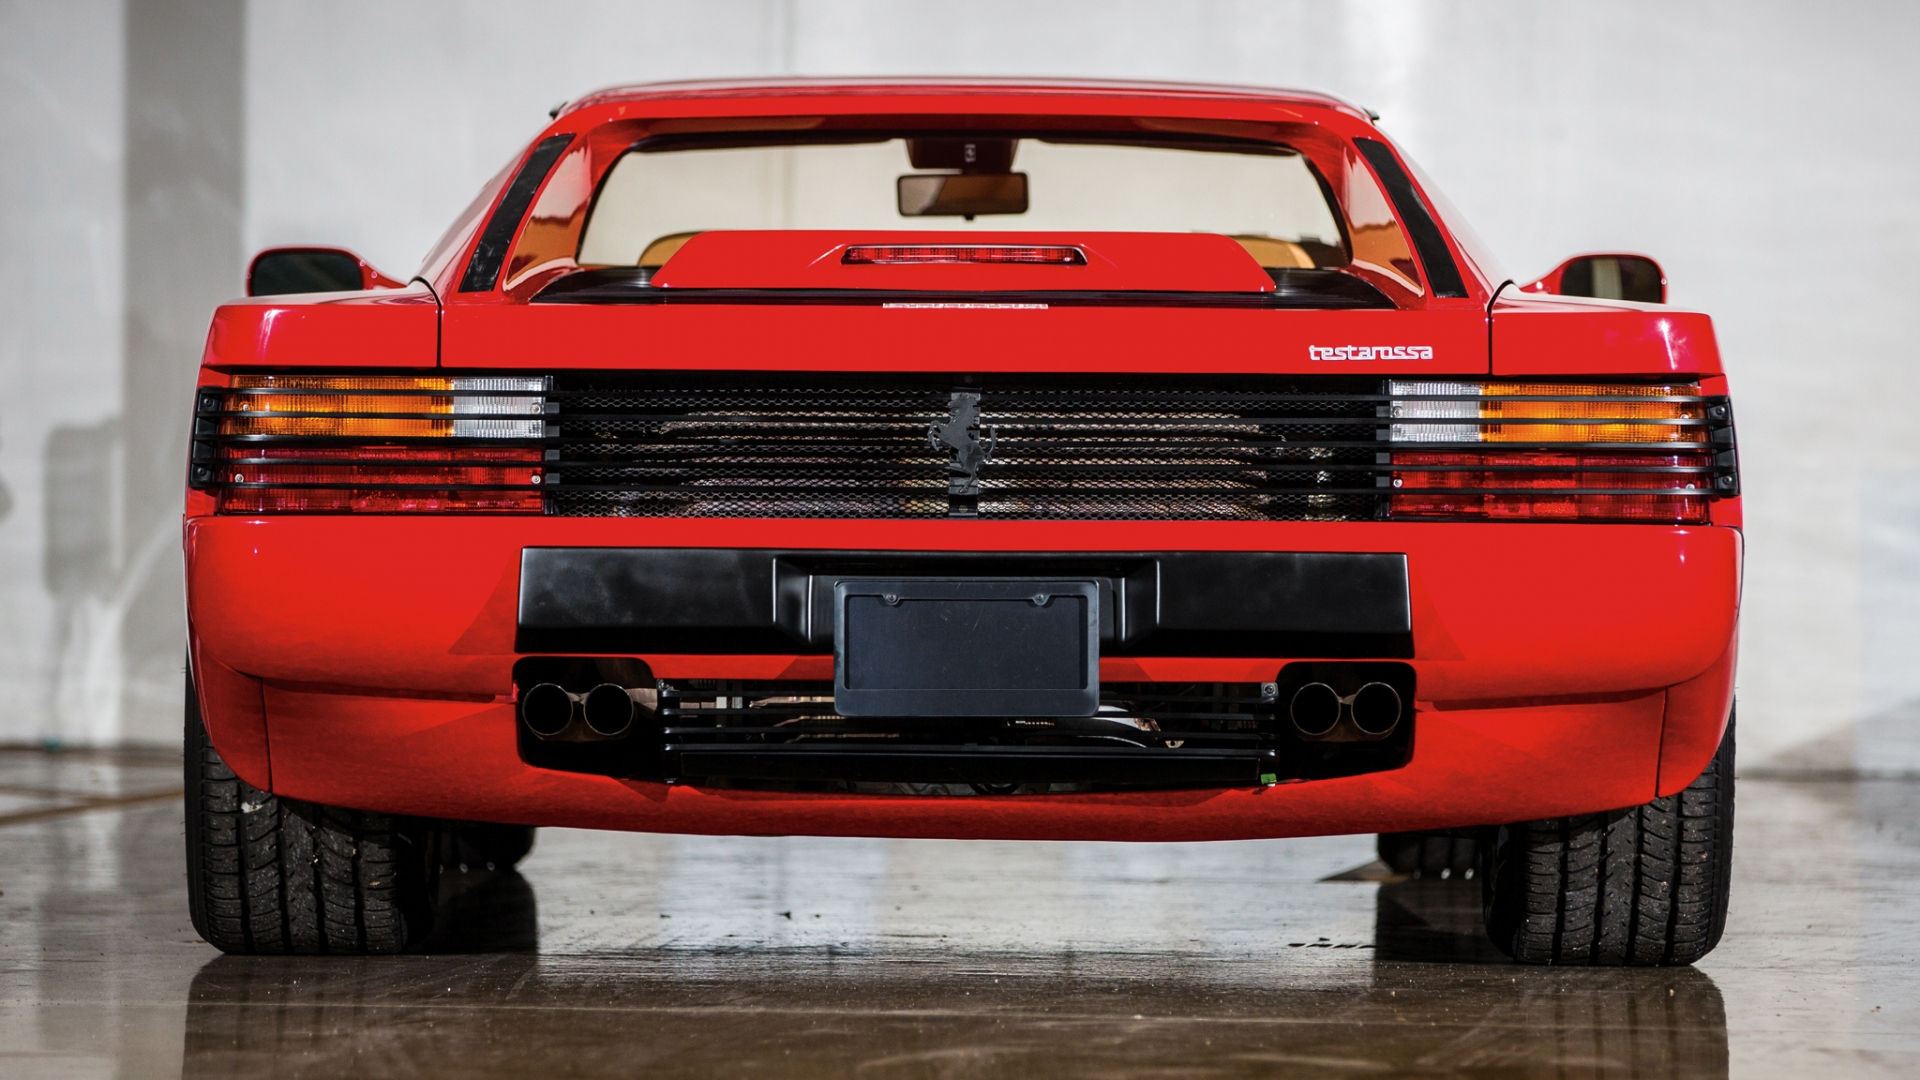 1985 ferrari testarossa wallpaper - photo #35